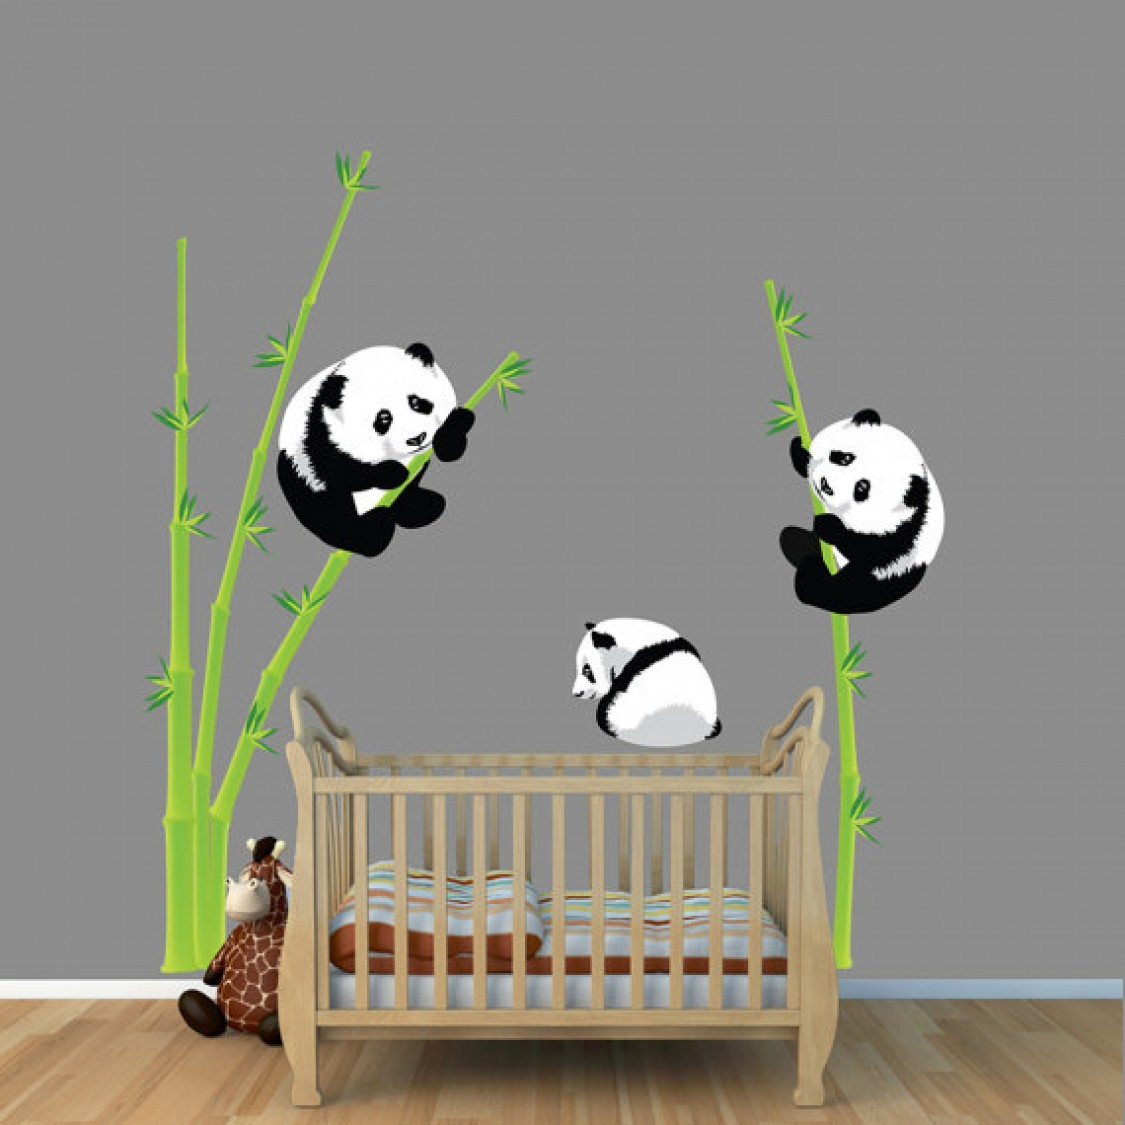 Bear and bamboo vinyl decals for boys panda bear and bamboo vinyl decals for boys amipublicfo Choice Image